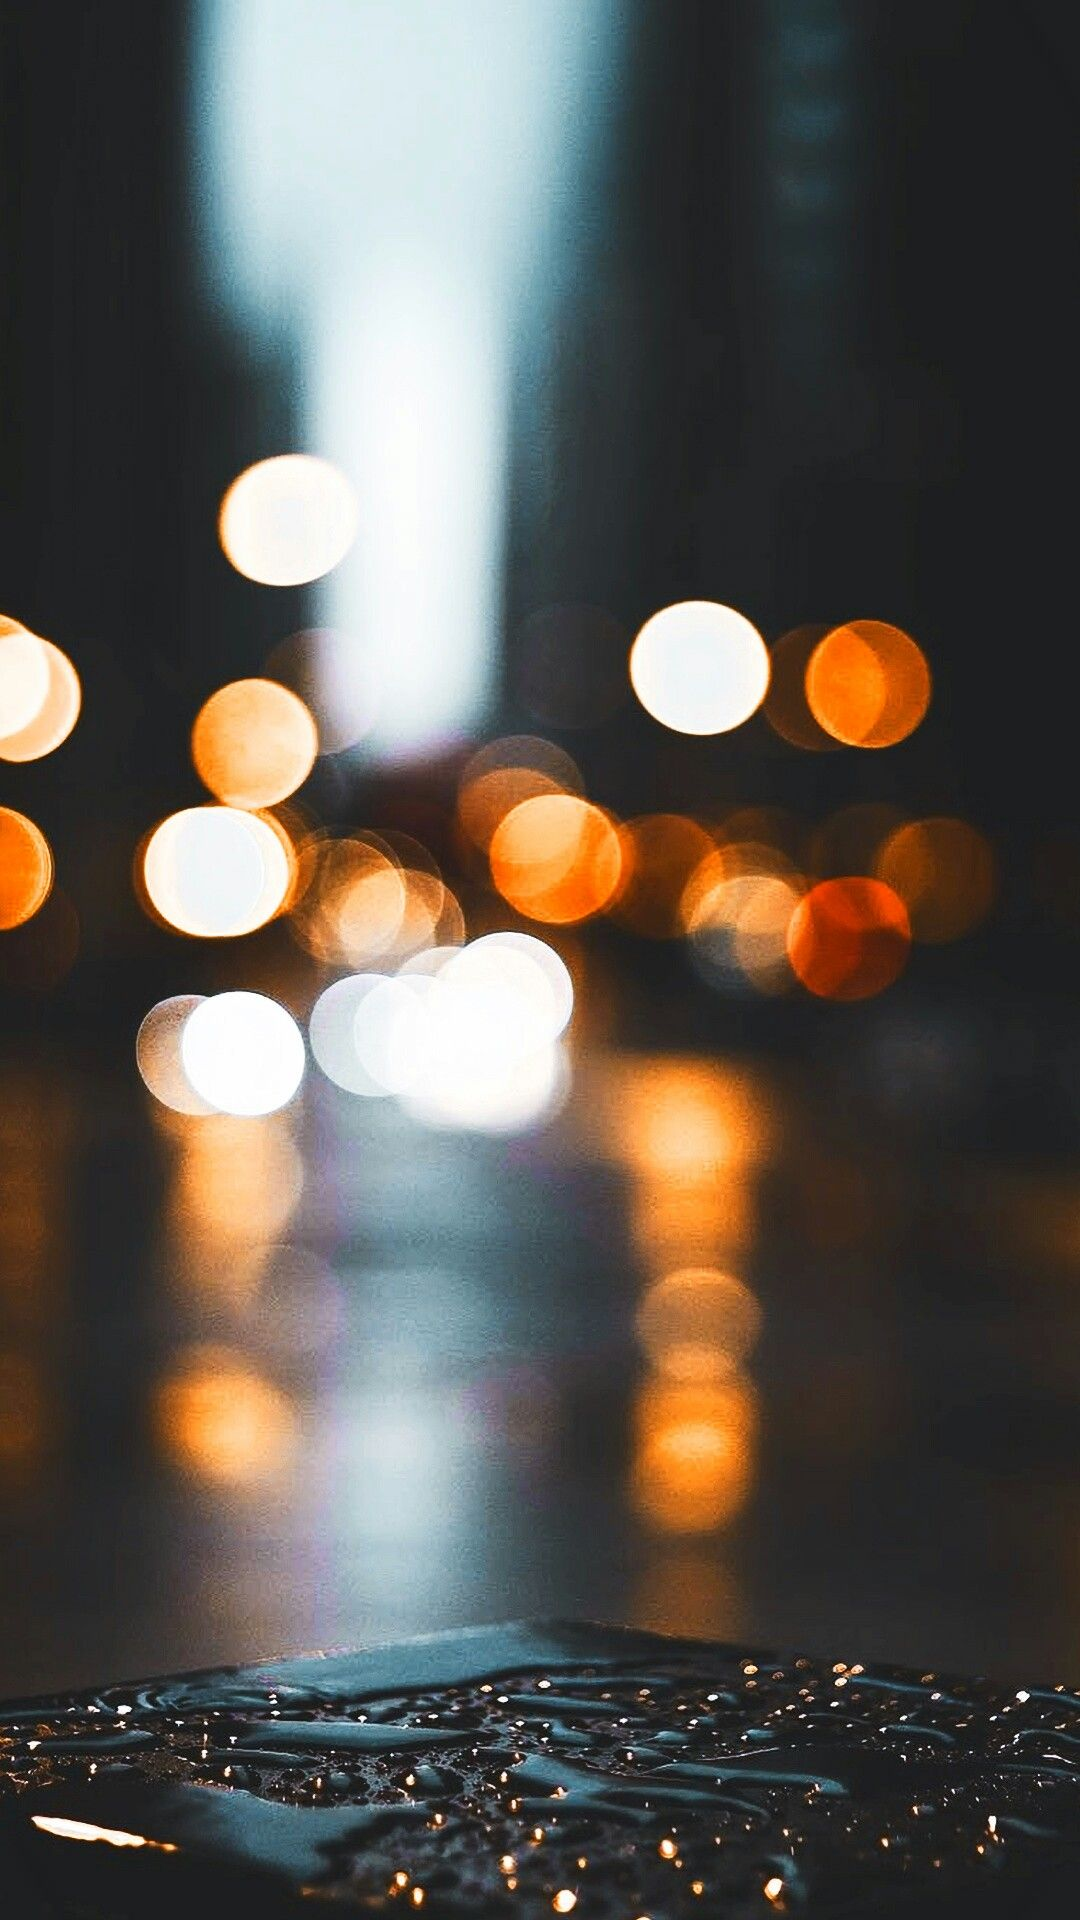 Bokeh In The City Shimmer Water Bokeh Photography City Lights Colors Color Reflection Bokehp Photography Wallpaper Tumblr Photography Rainy Wallpaper